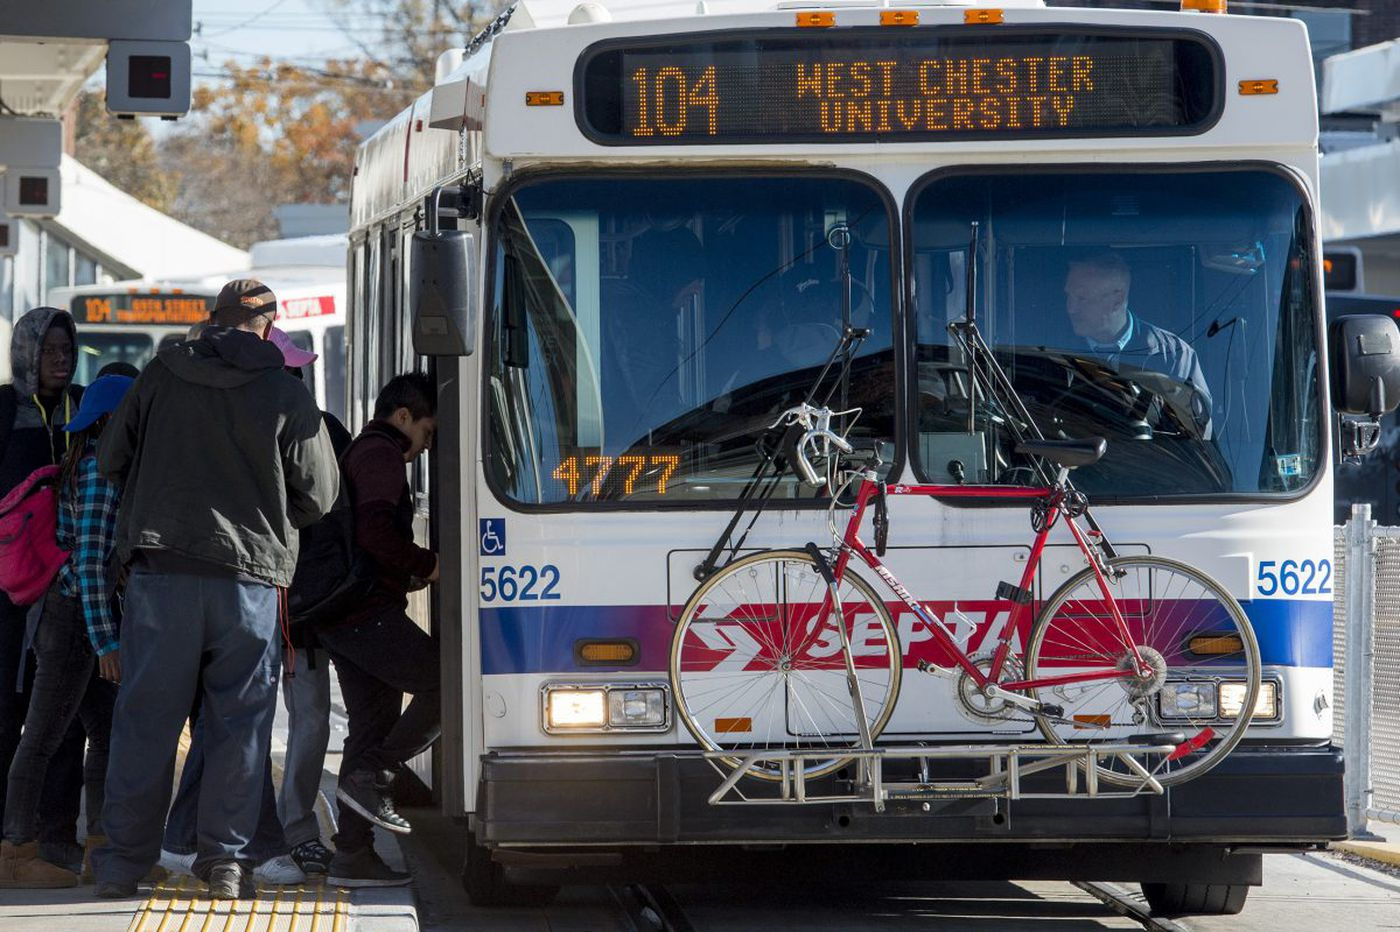 Card readers on SEPTA buses not working? Blame it on growing pains